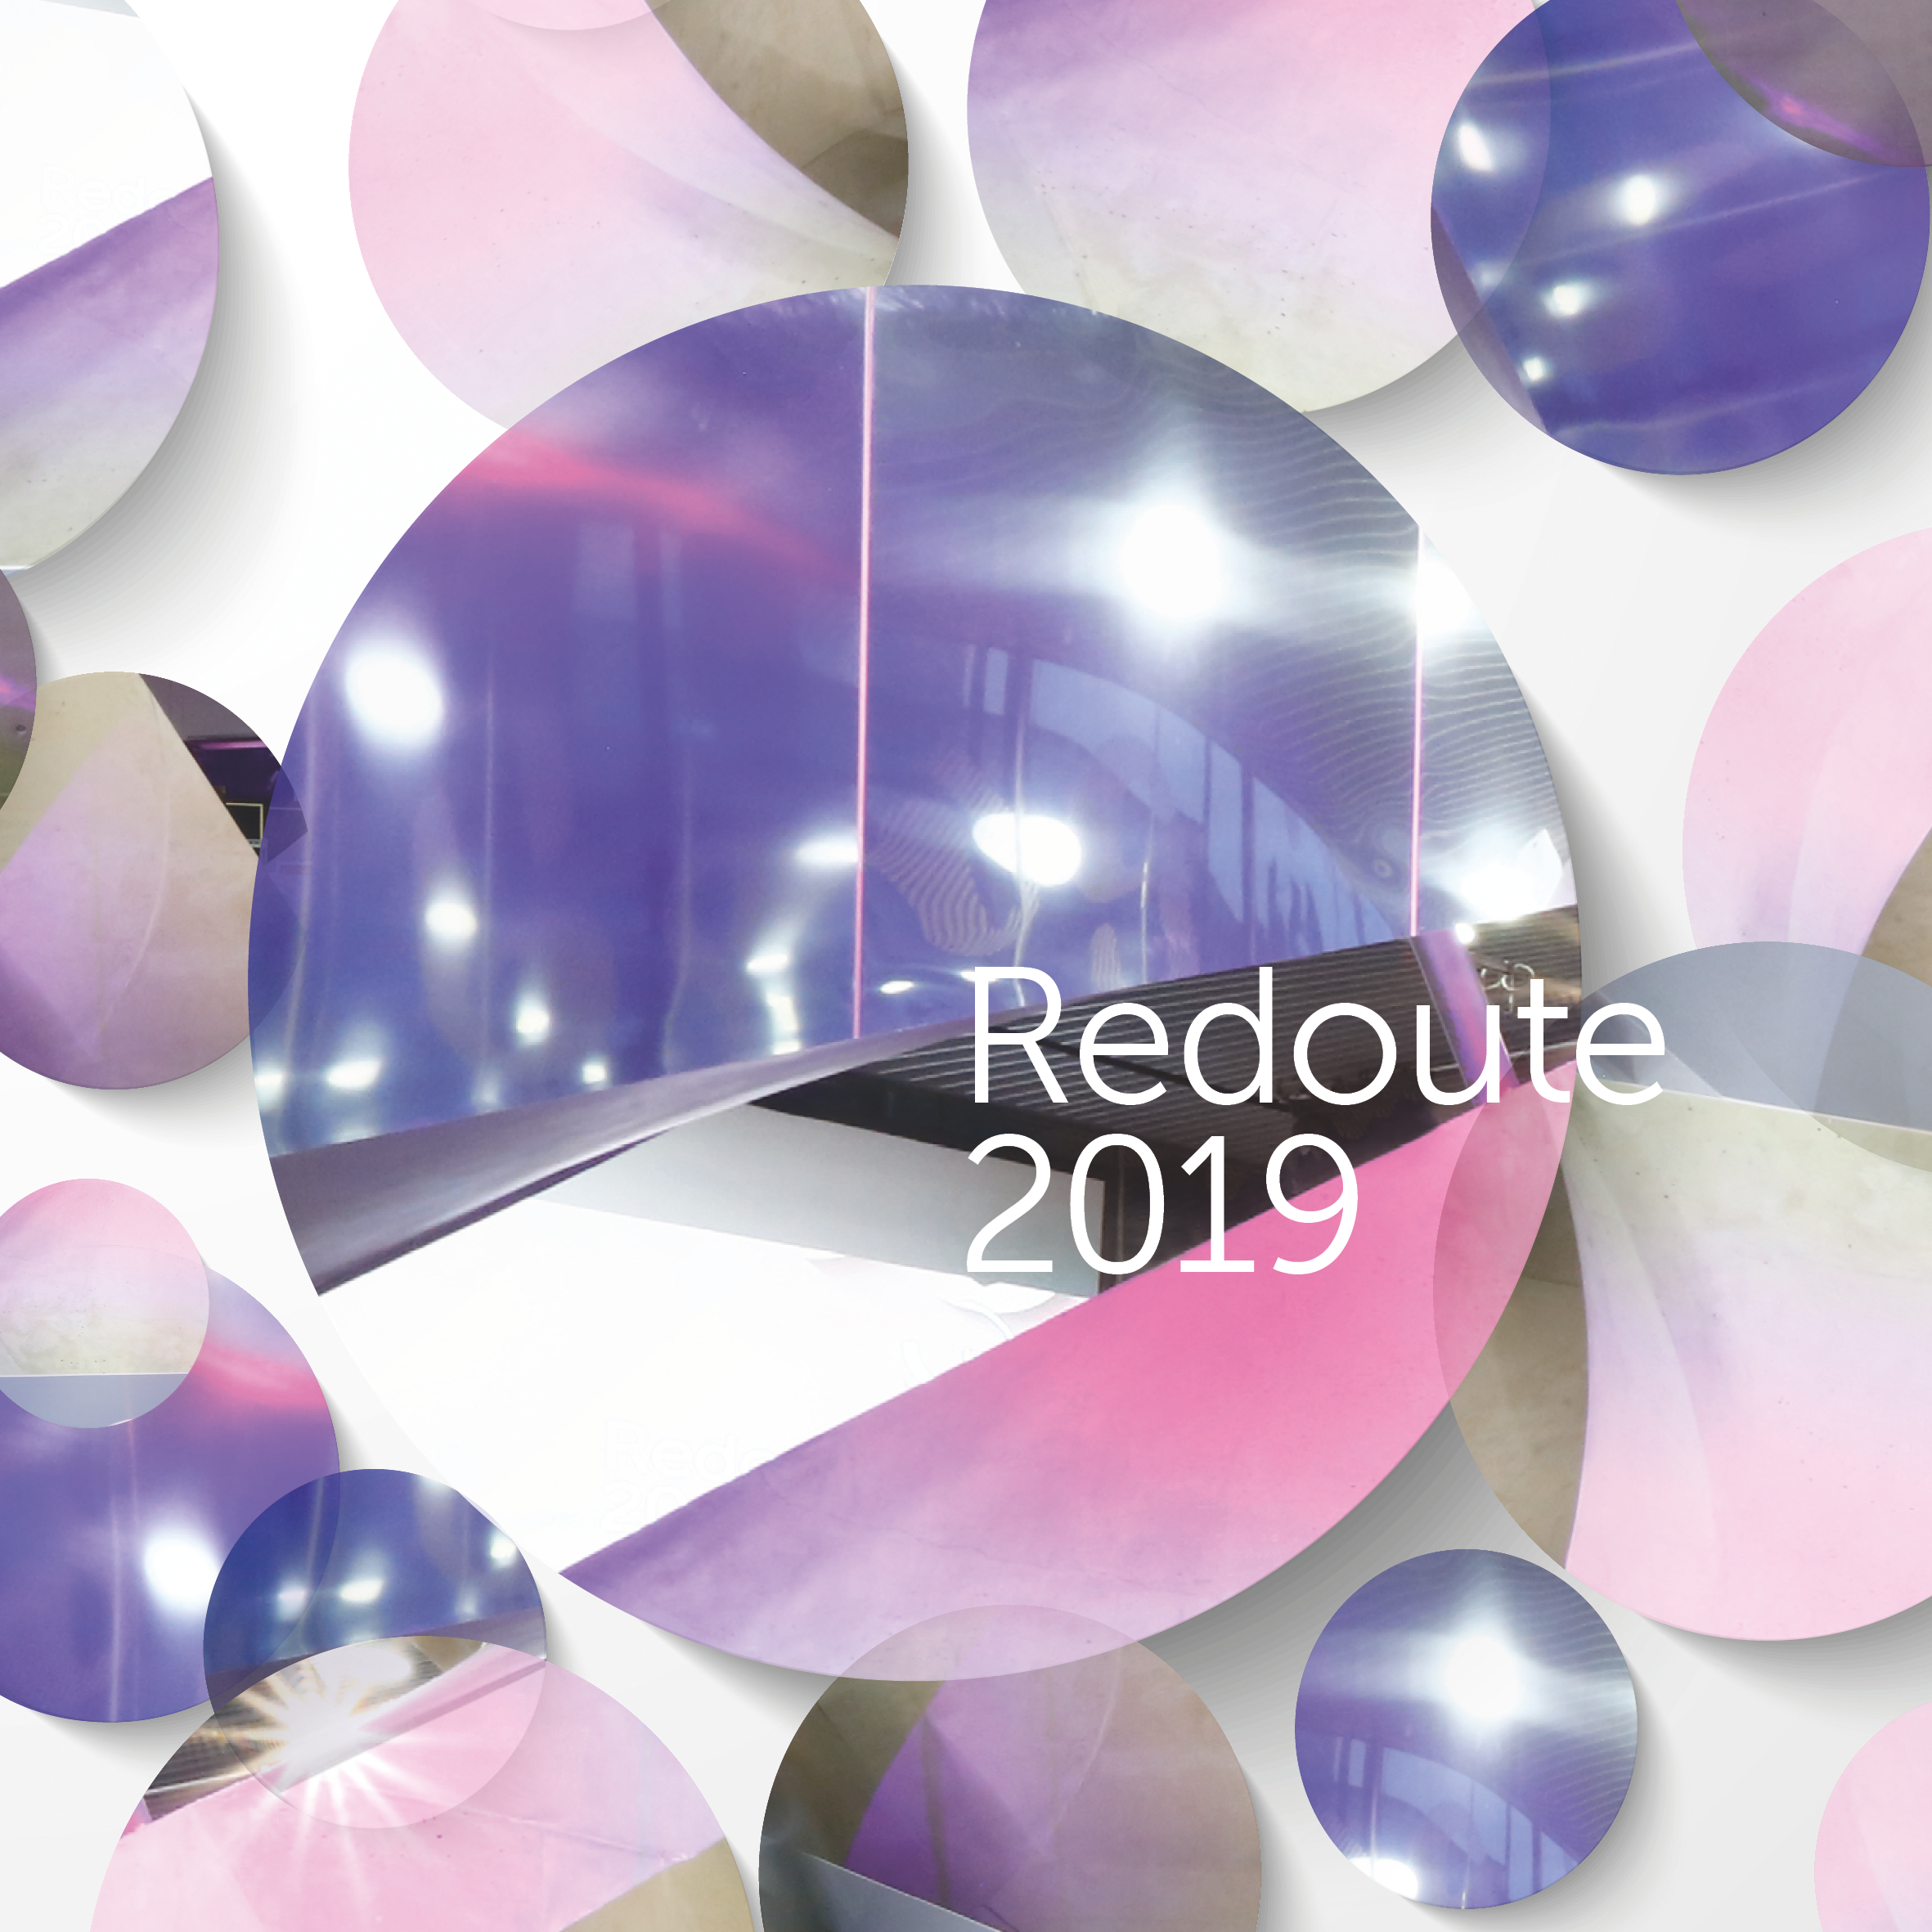 Redoute 2019